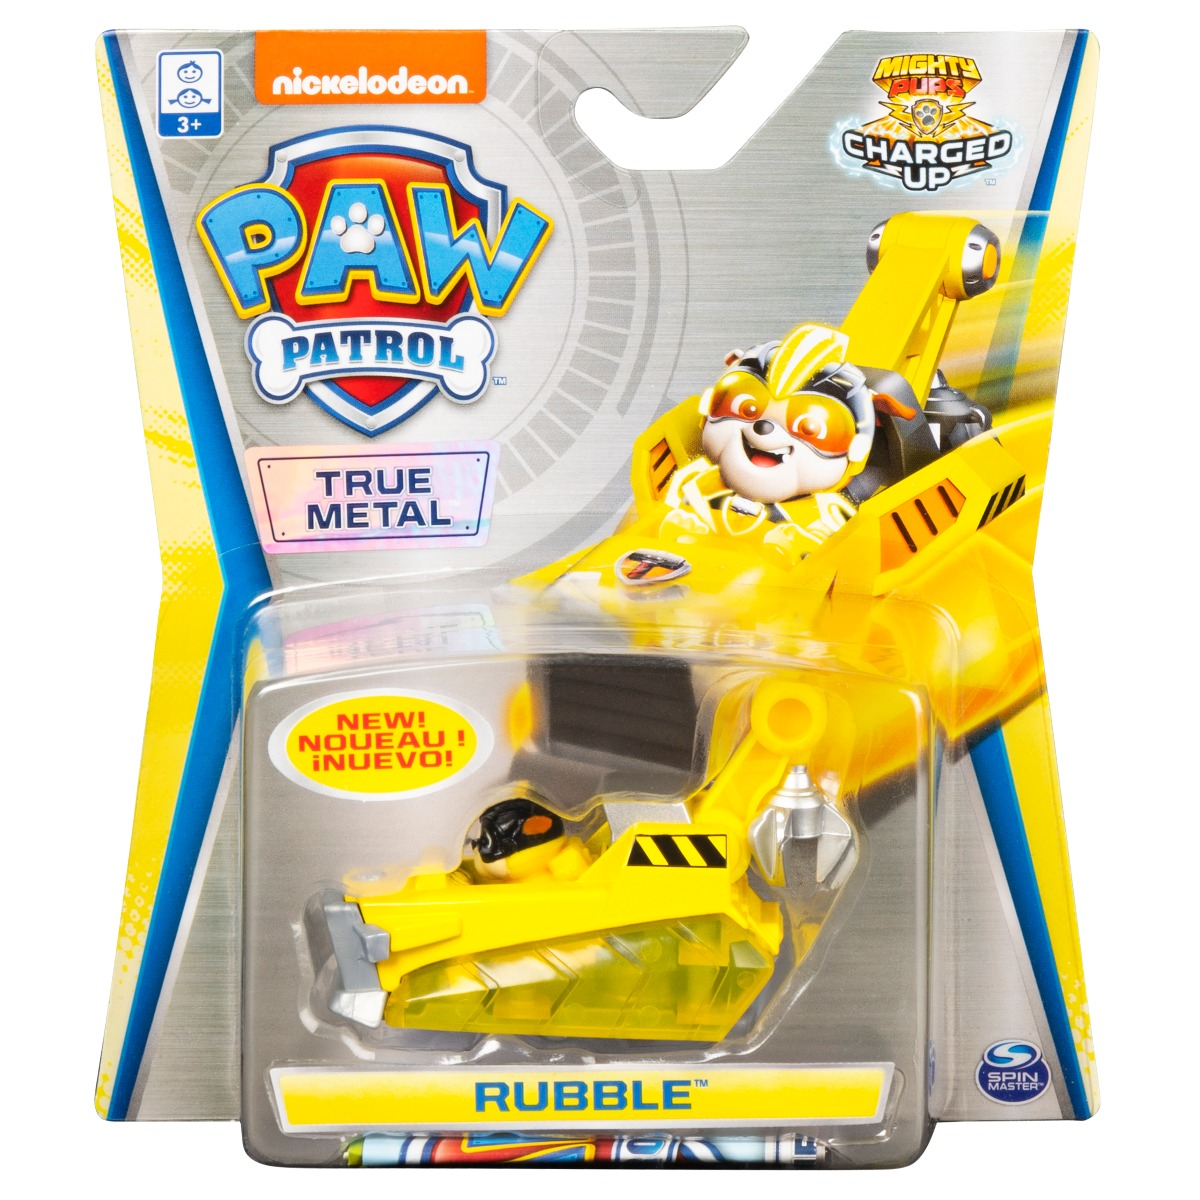 Masinuta cu figurina Paw Patrol True Metal, Rubble 20121340